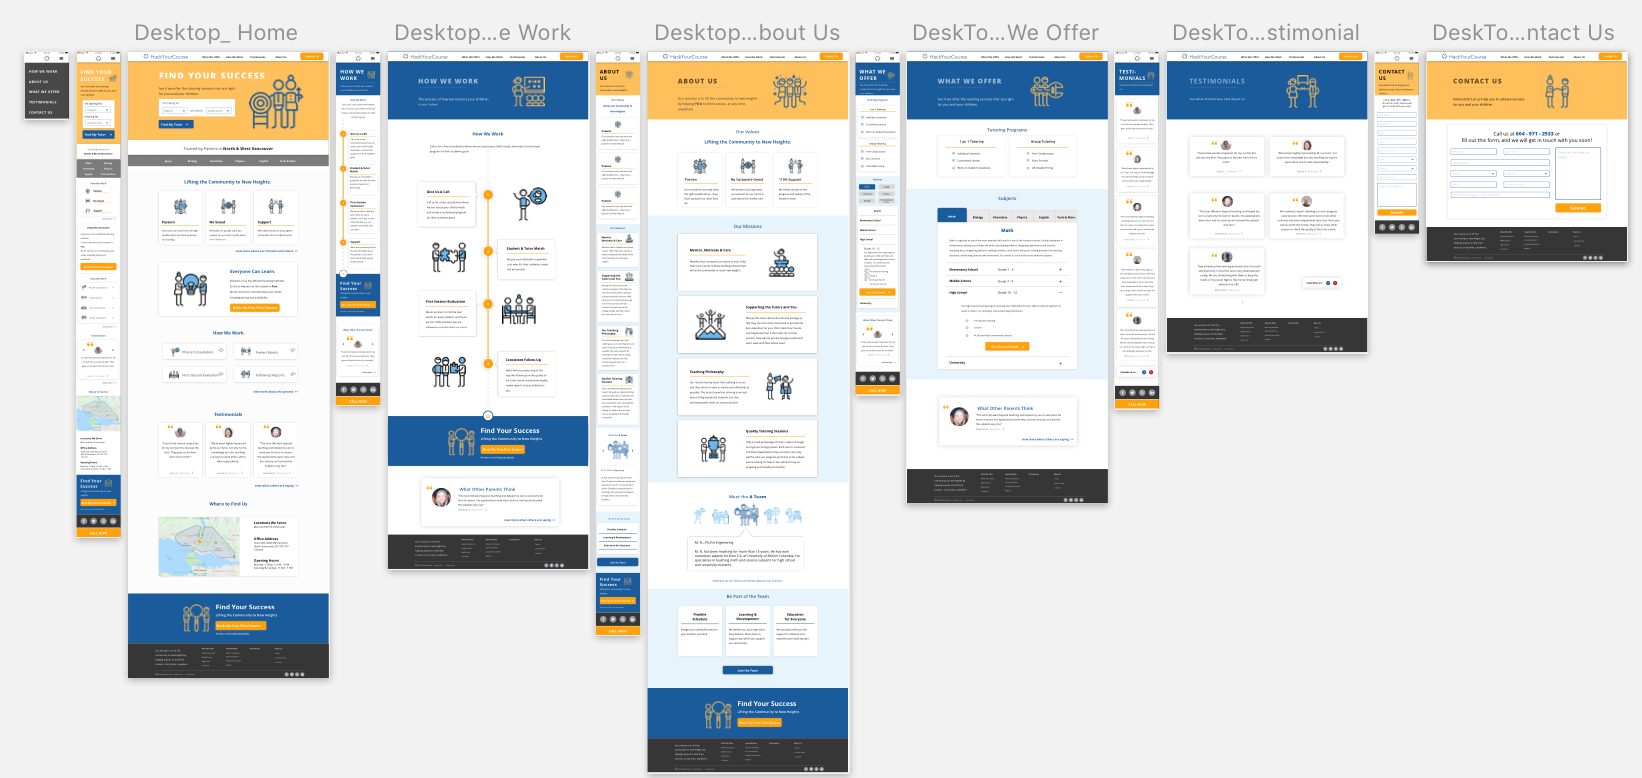 Improving trust and conversion rate through UX optimization